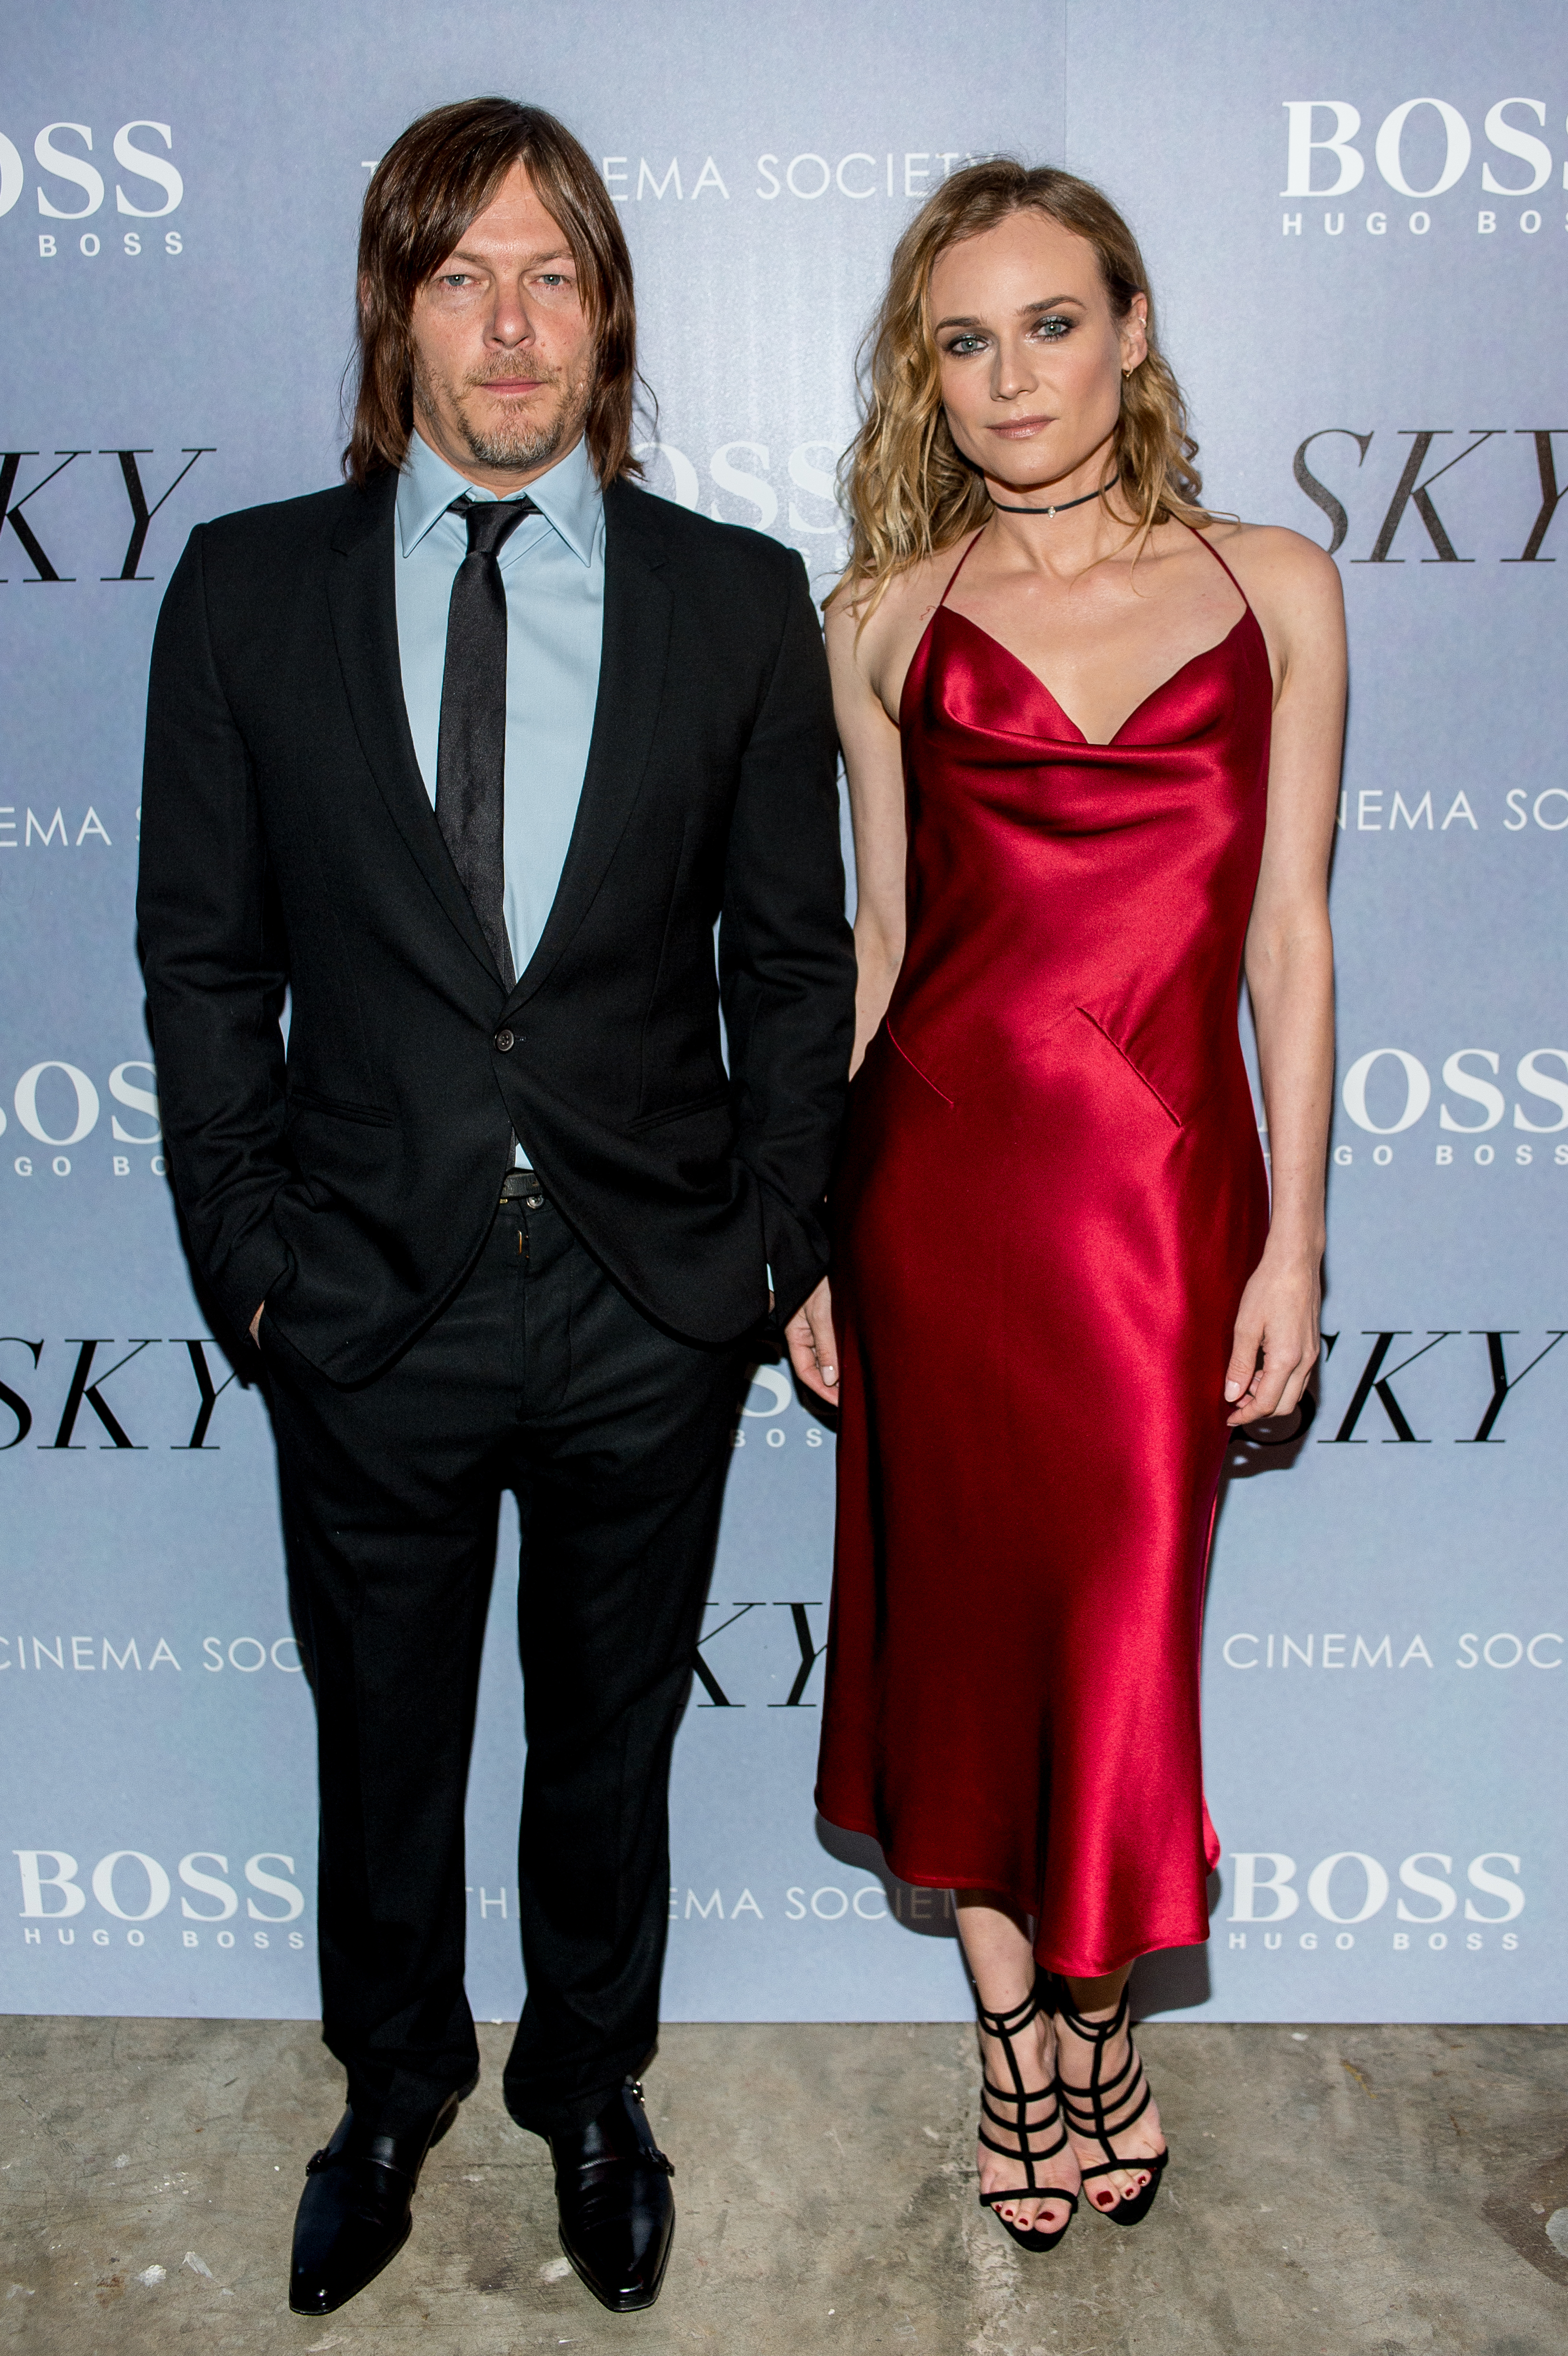 Diane Kruger And Norman Reedus Celebrate Their New Film Sky